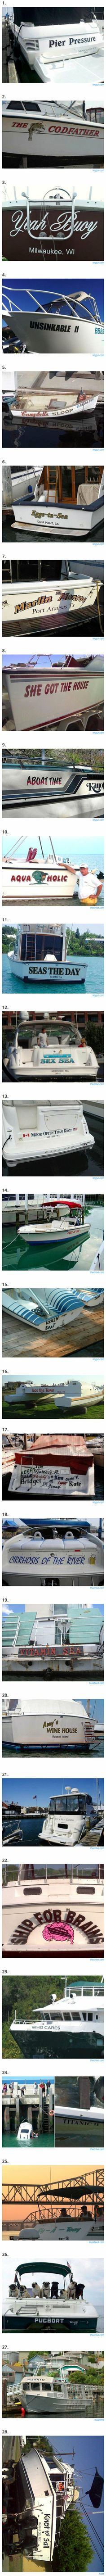 The 28 cleverest boat names of all time. #4 is absolutely genius...